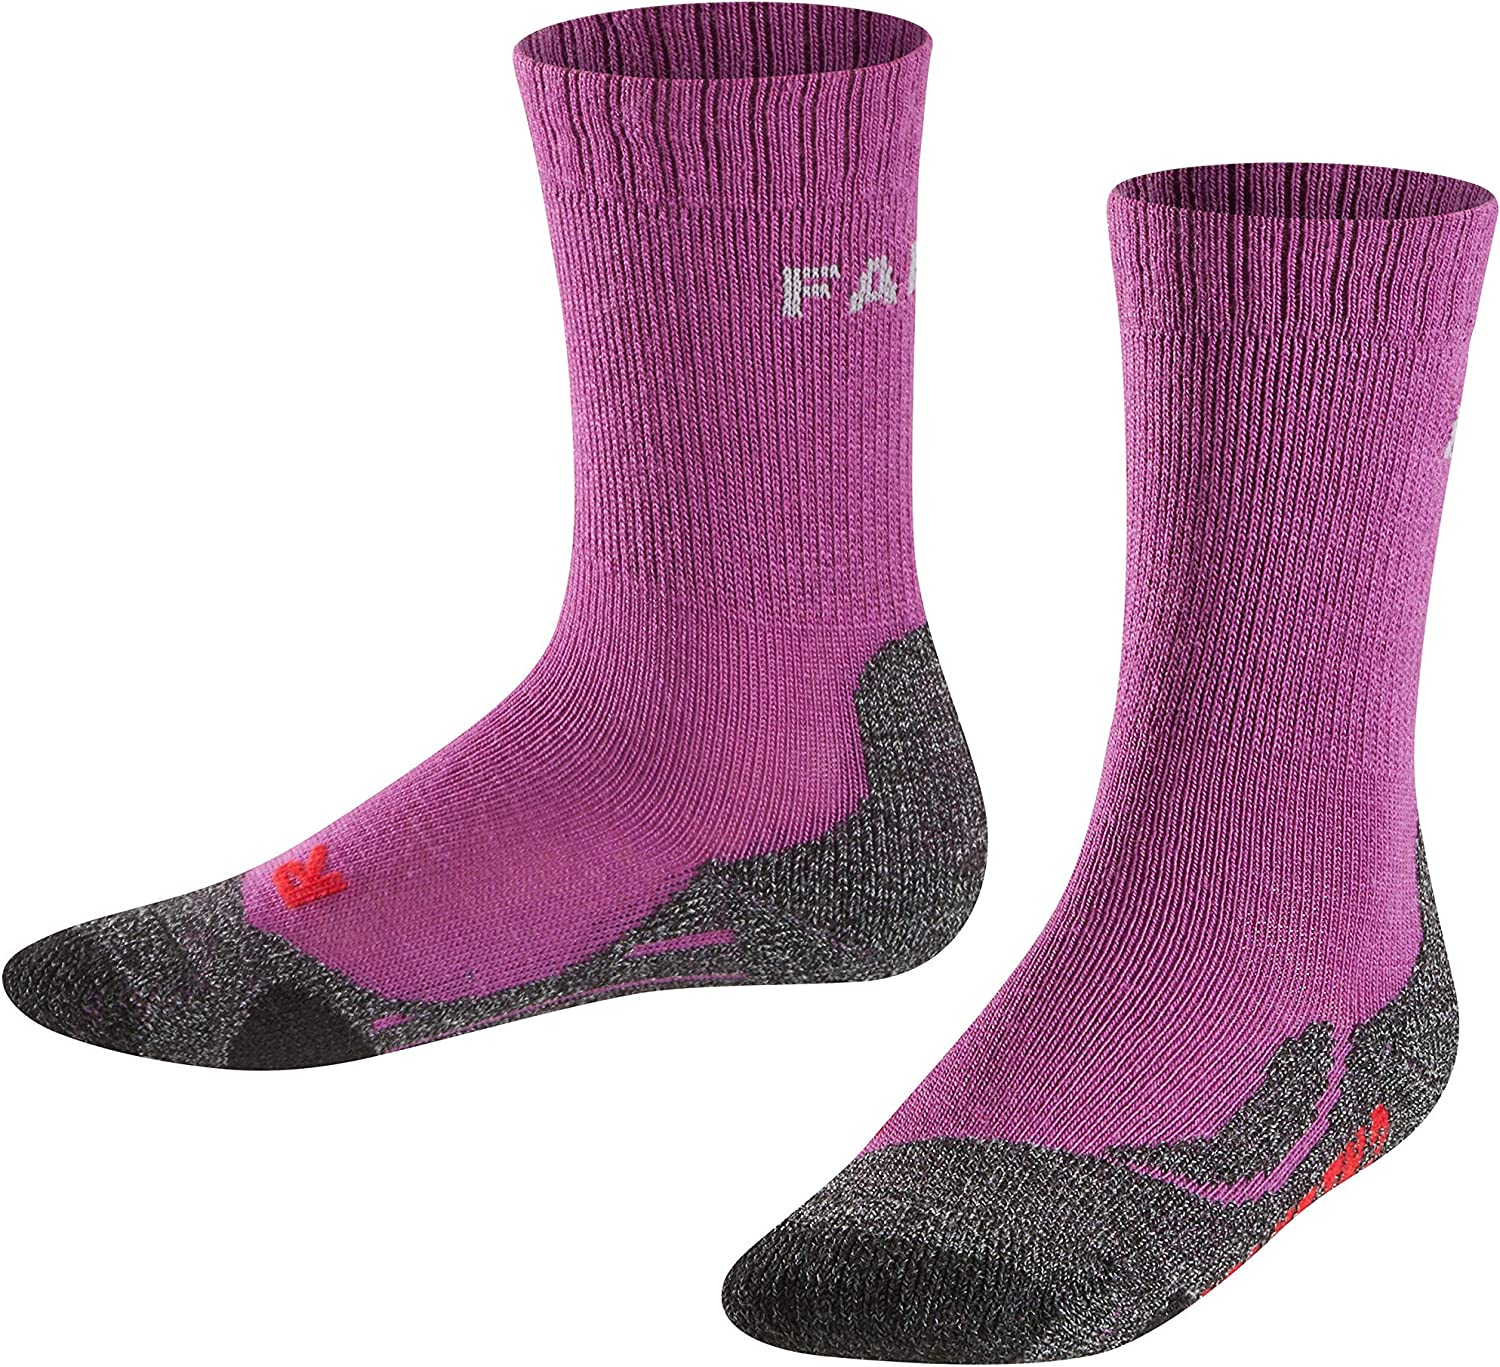 9-12 Ans SealSkinz Waterproof Warm Weather Mid Length Chaussettes Mixte Adulte Wildberry 8895 35-38 Rose